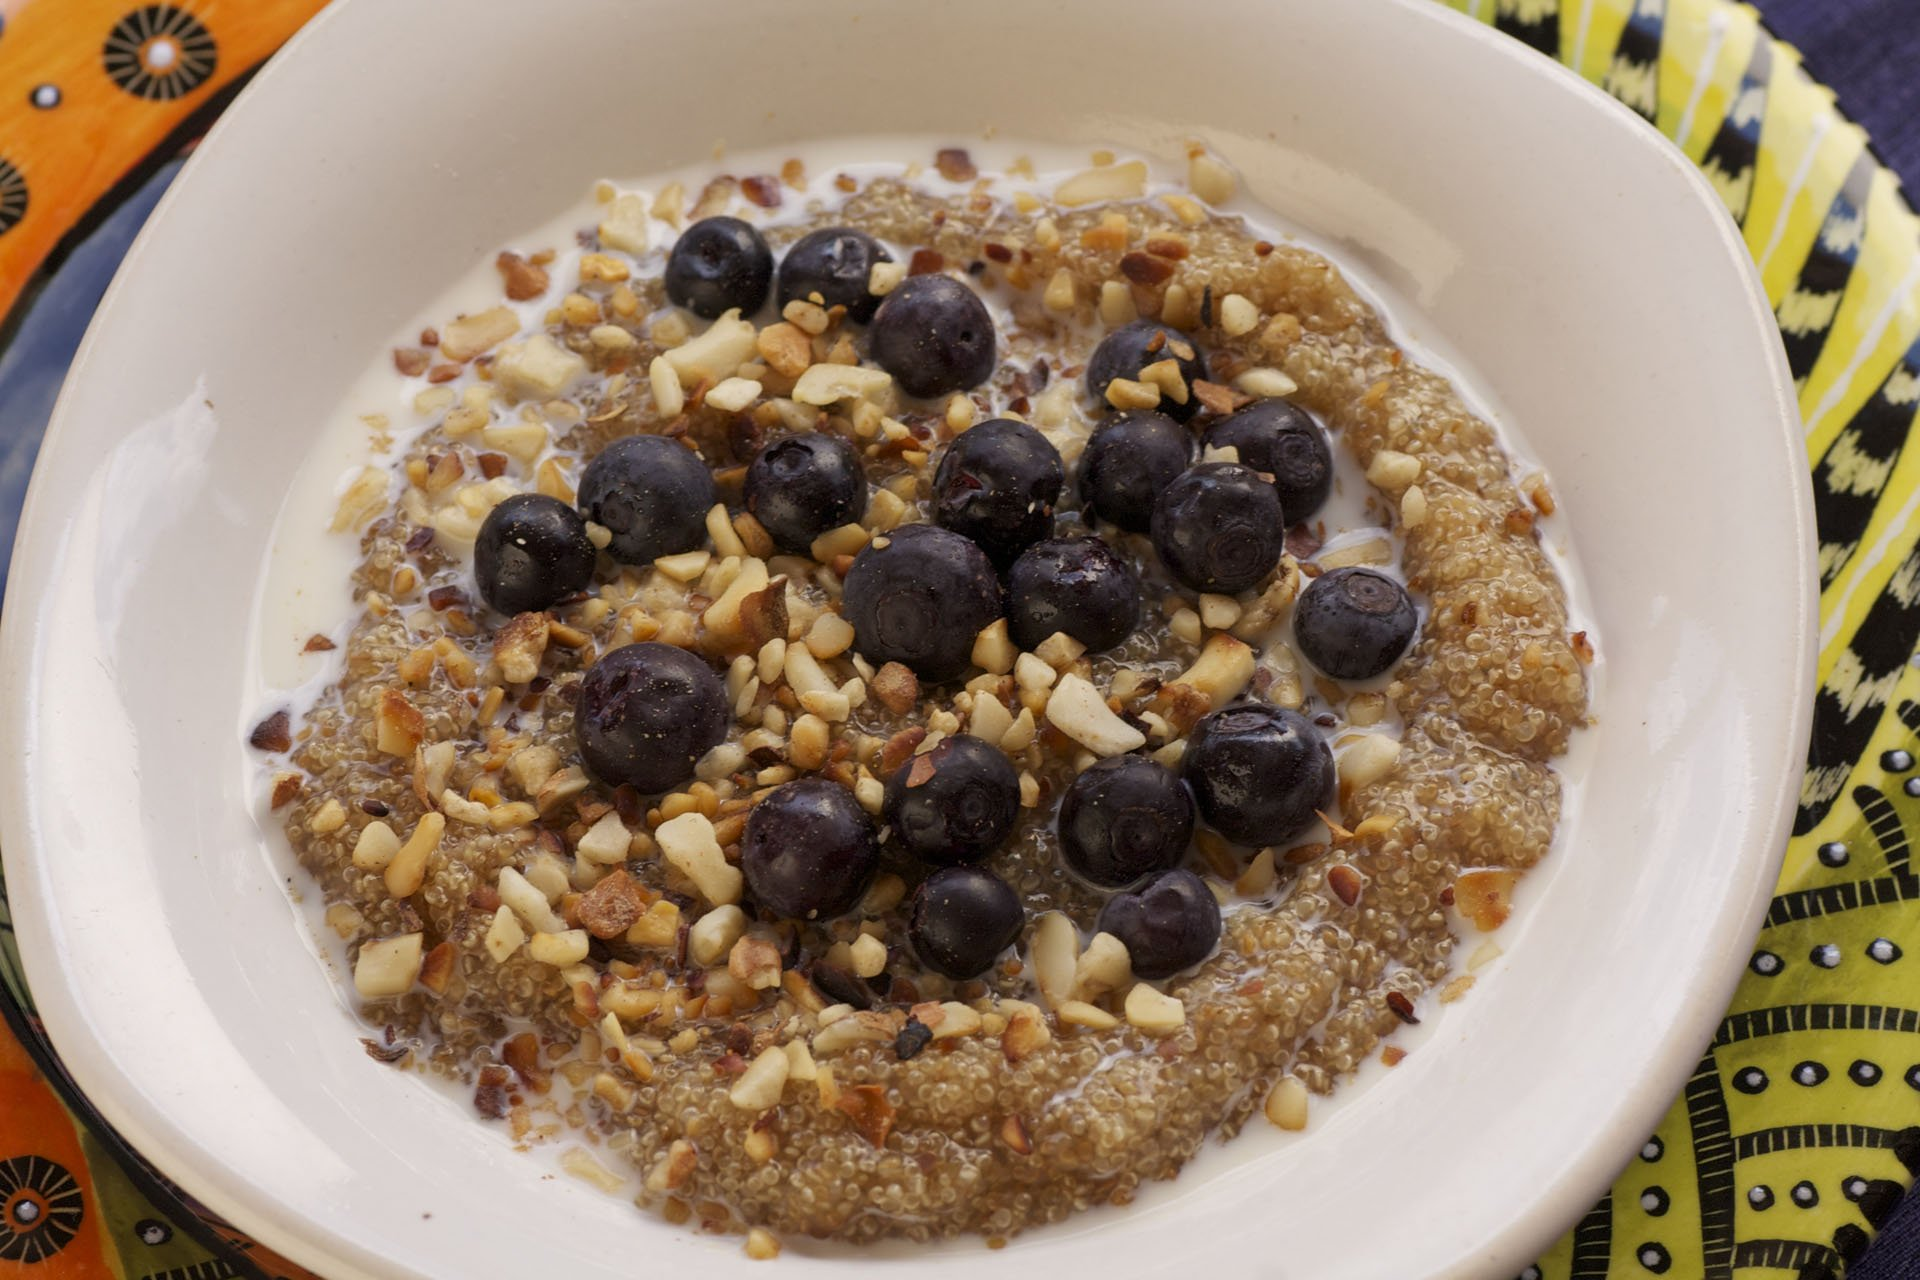 Amaranth breakfast with bananas, marula nuts and maple syrup